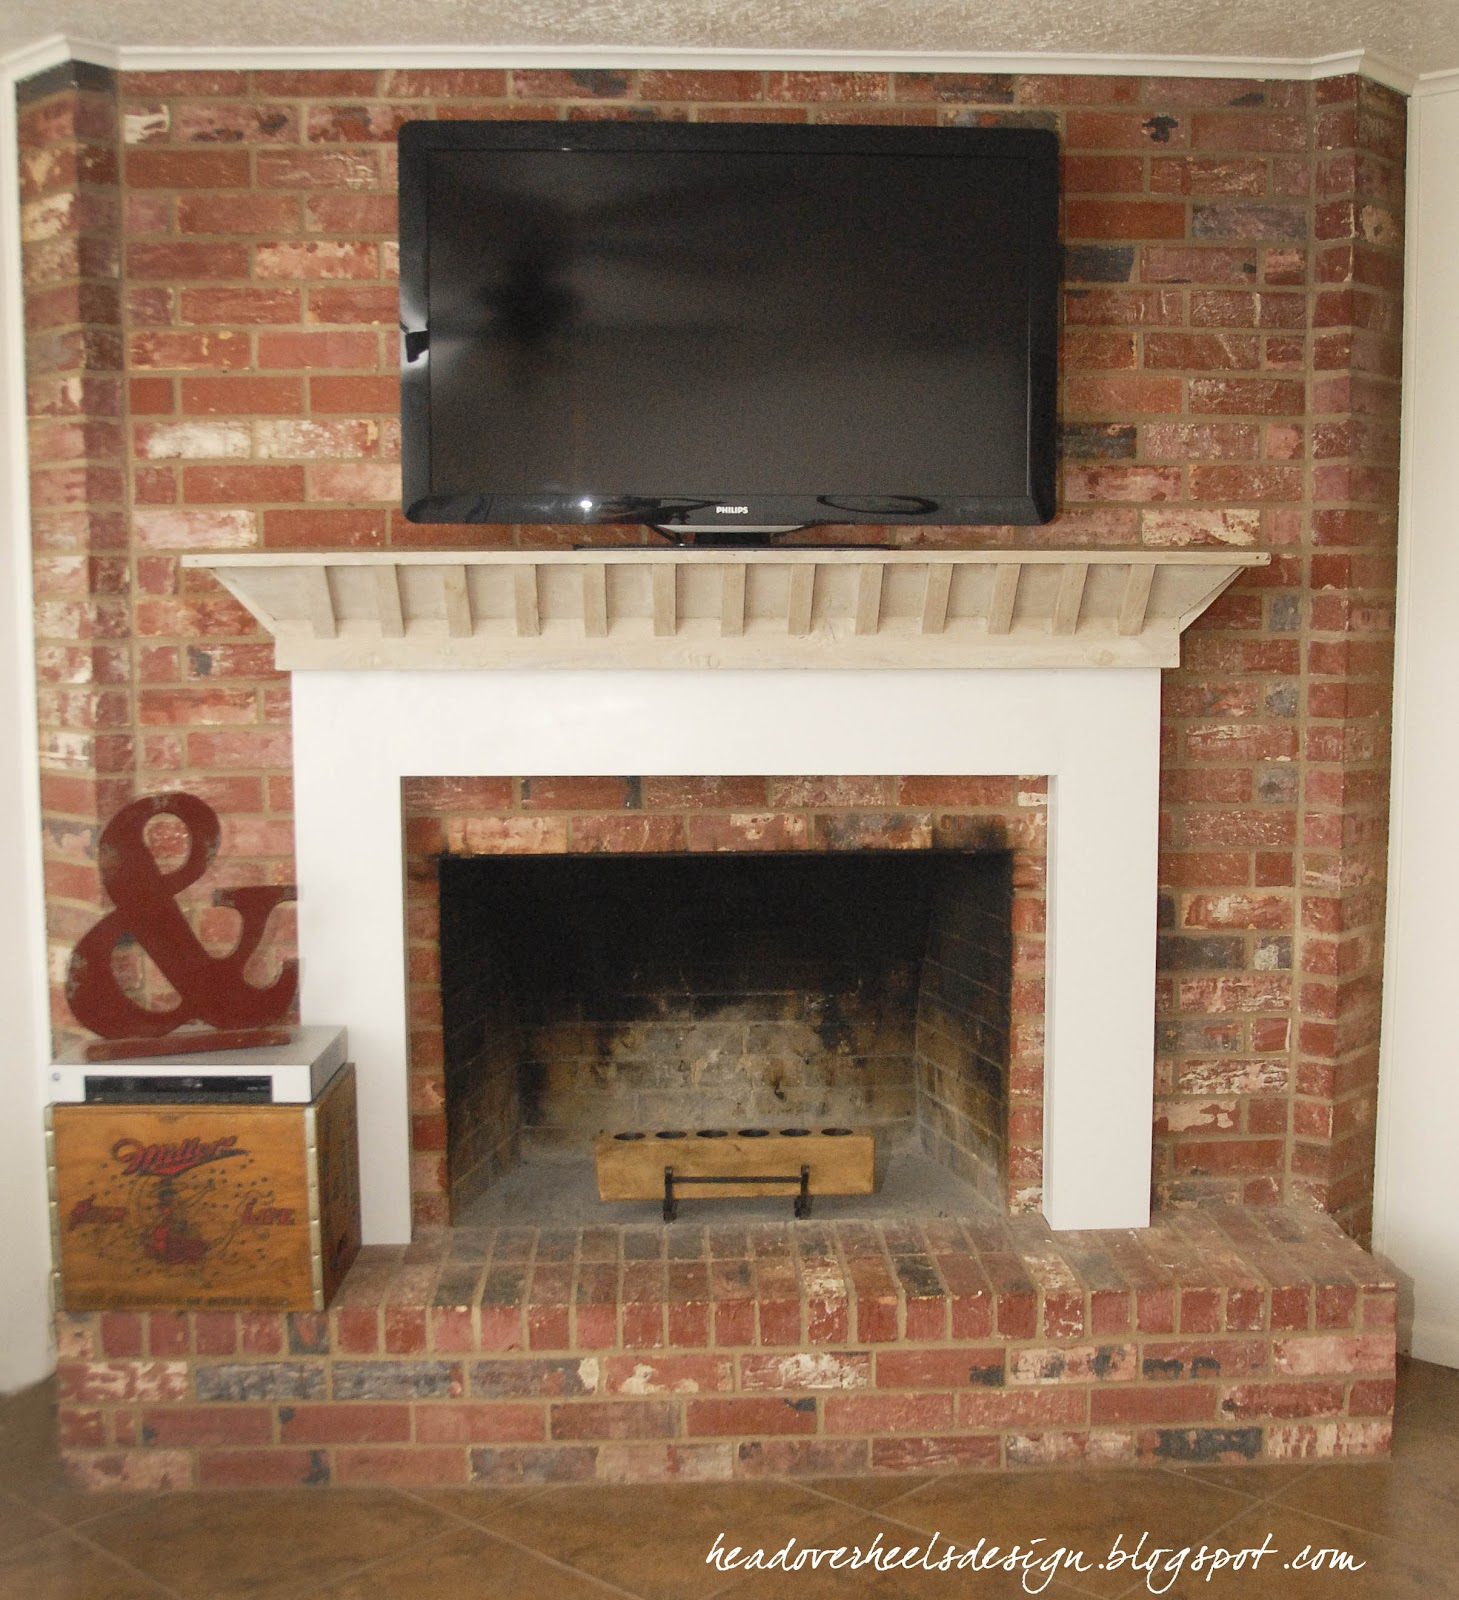 Head Over Heels: TV on a Brick Fireplace: A Whitewashed Mantle